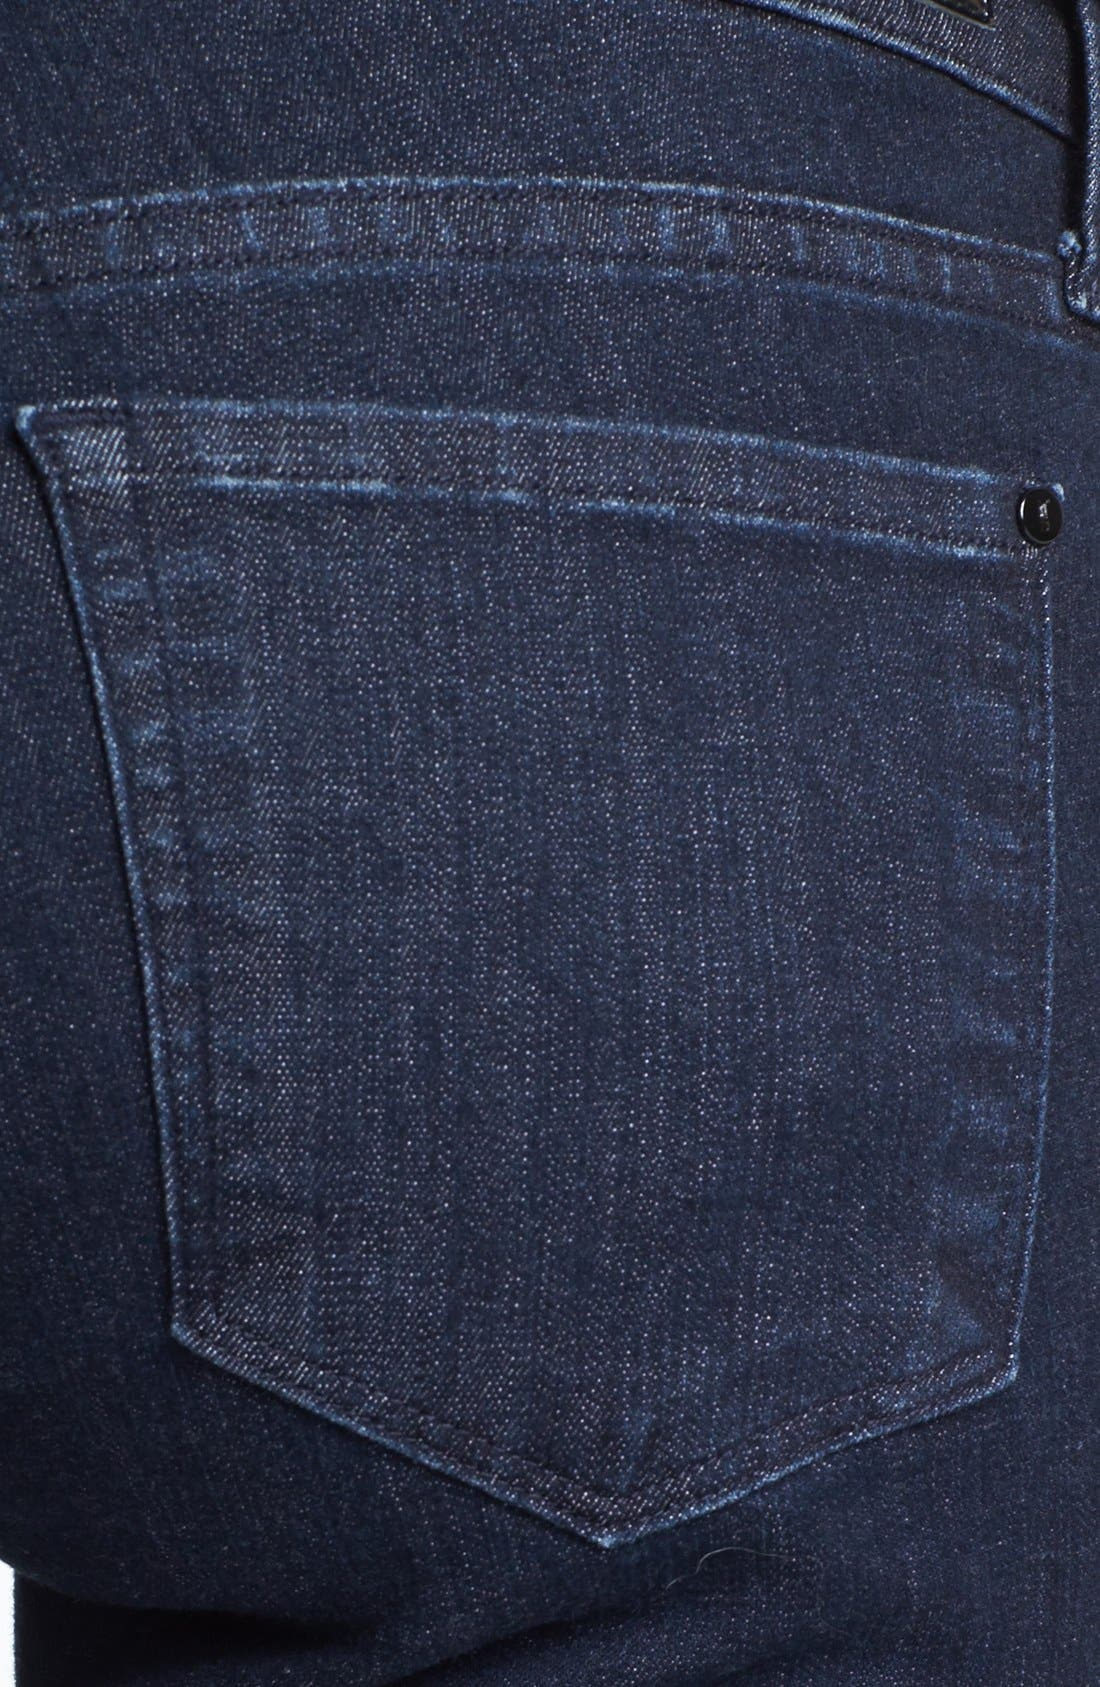 Alternate Image 3  - !iT Collective 'Jolie' Slim Bootcut Jeans (A Star Is Born)